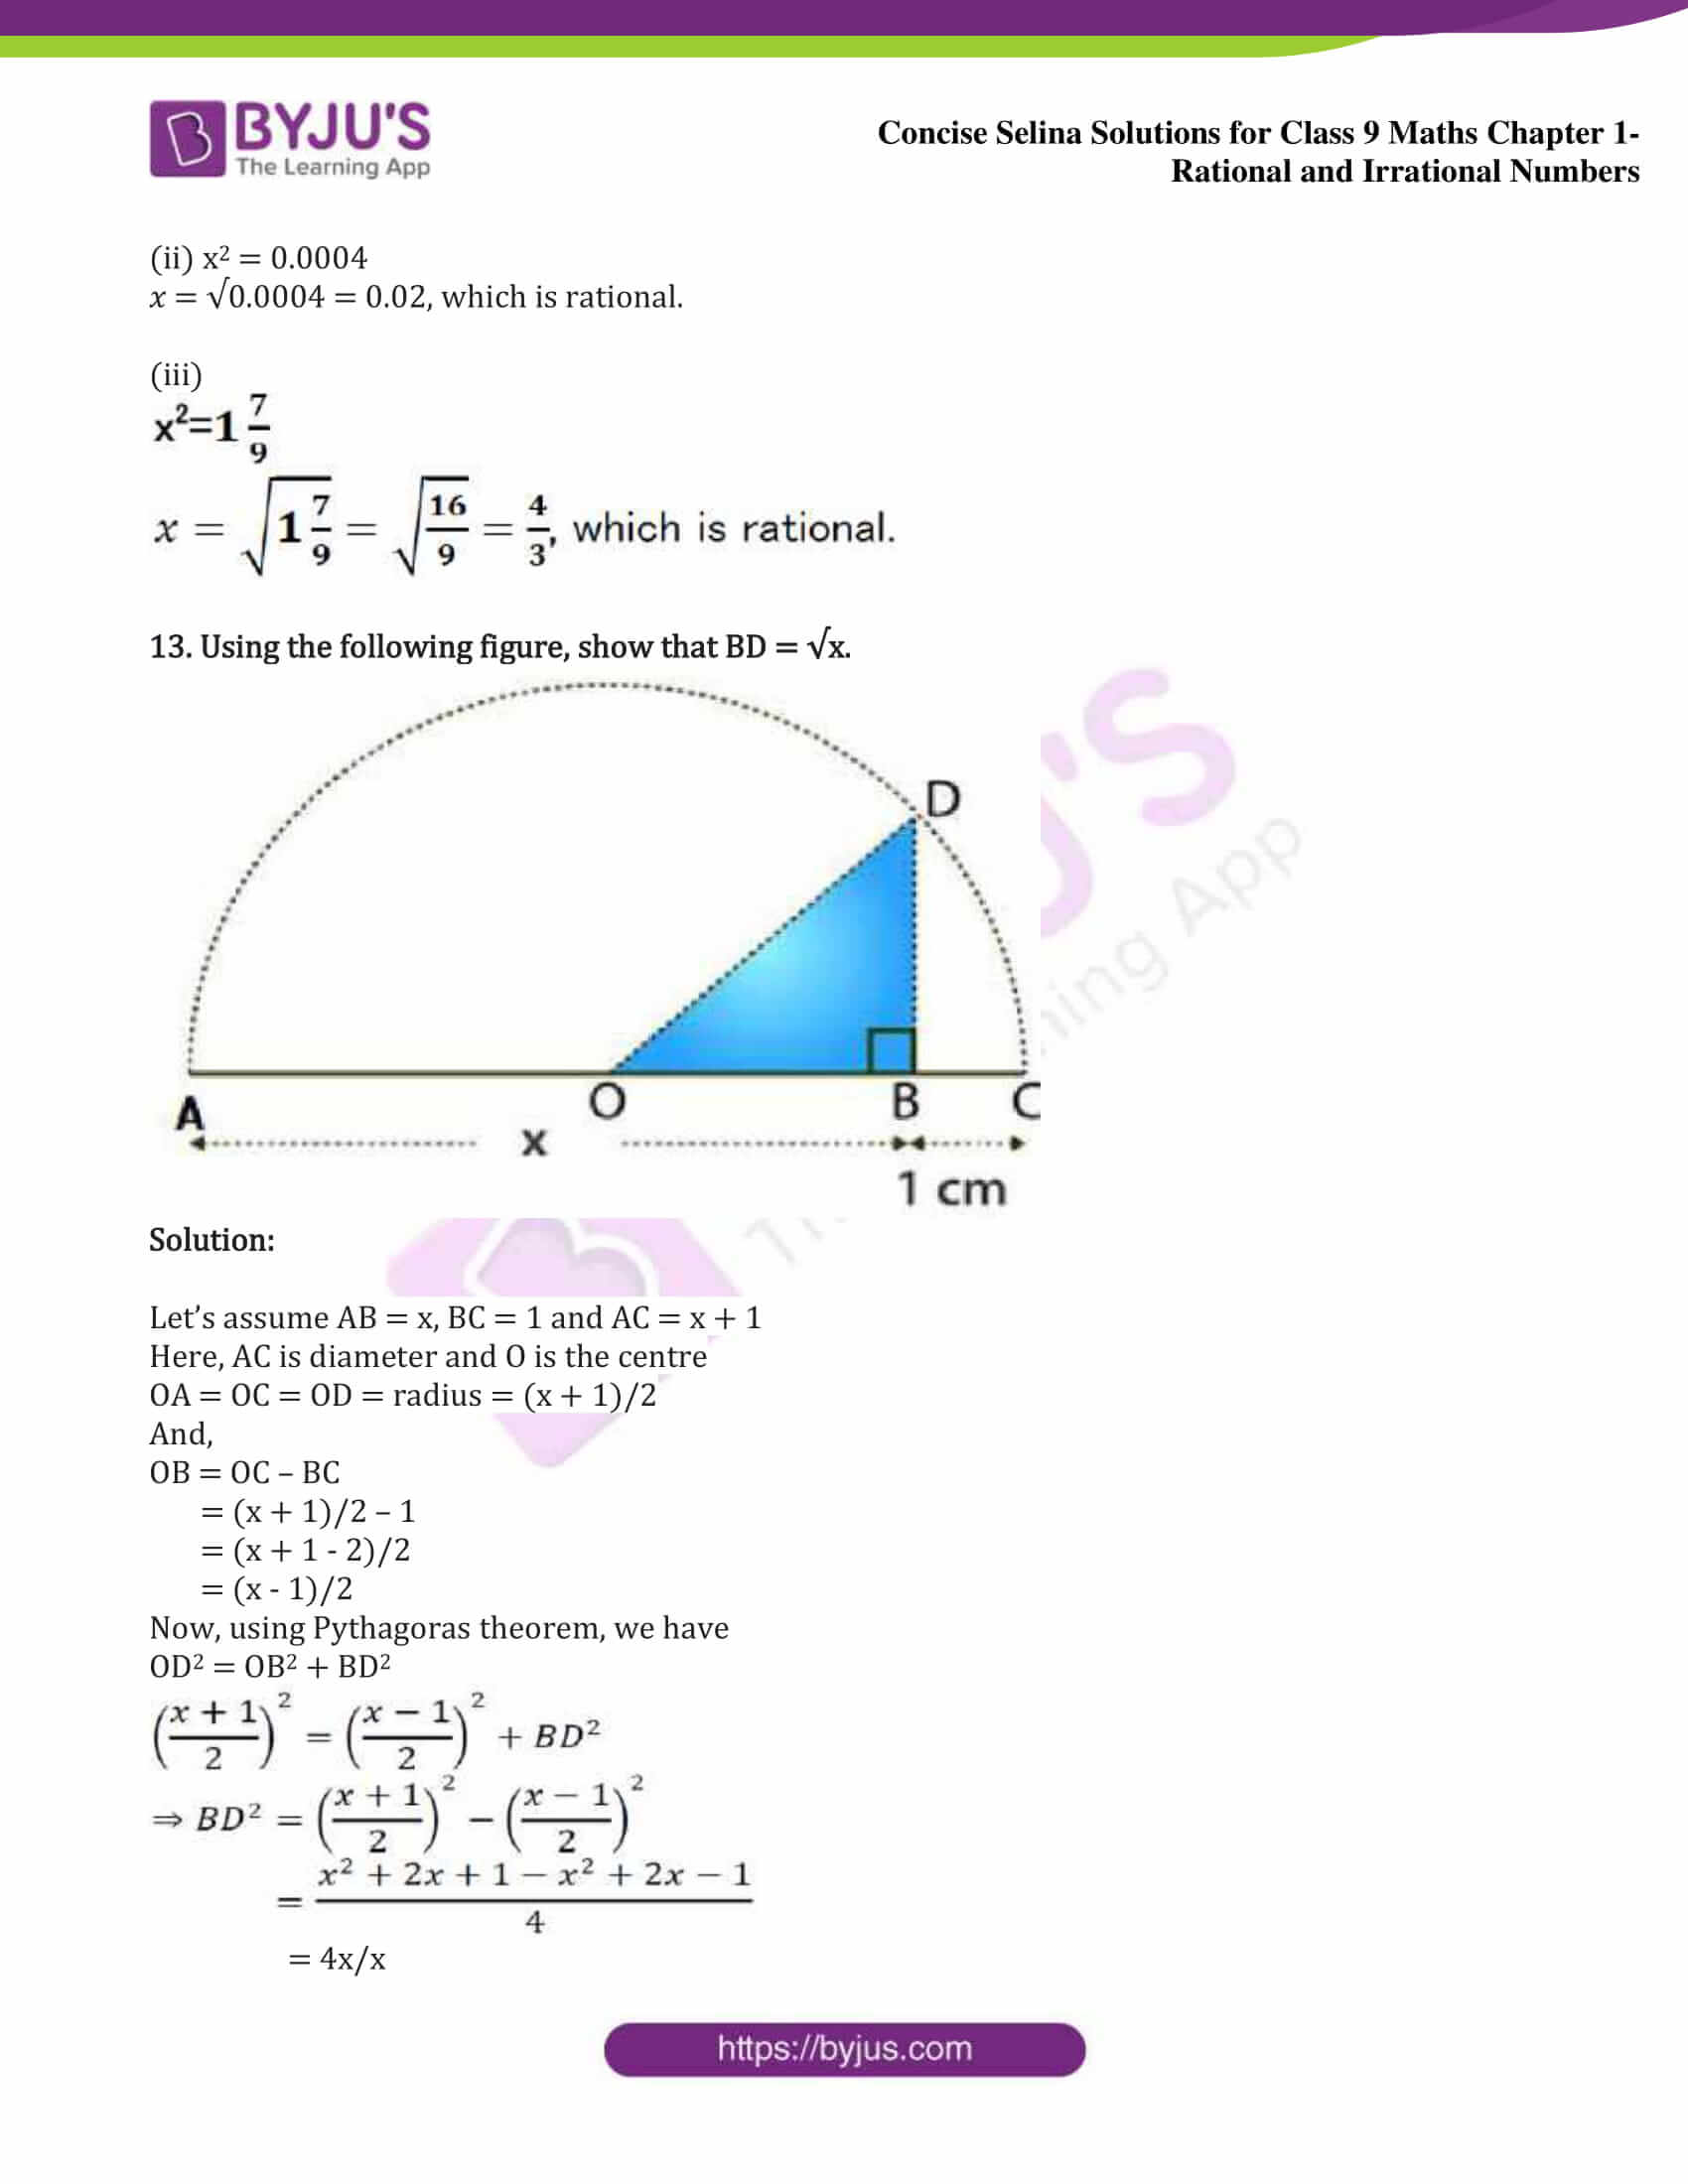 icse class 9 maths may13 selina solutions chapter 1 rational and irrational numbers 42